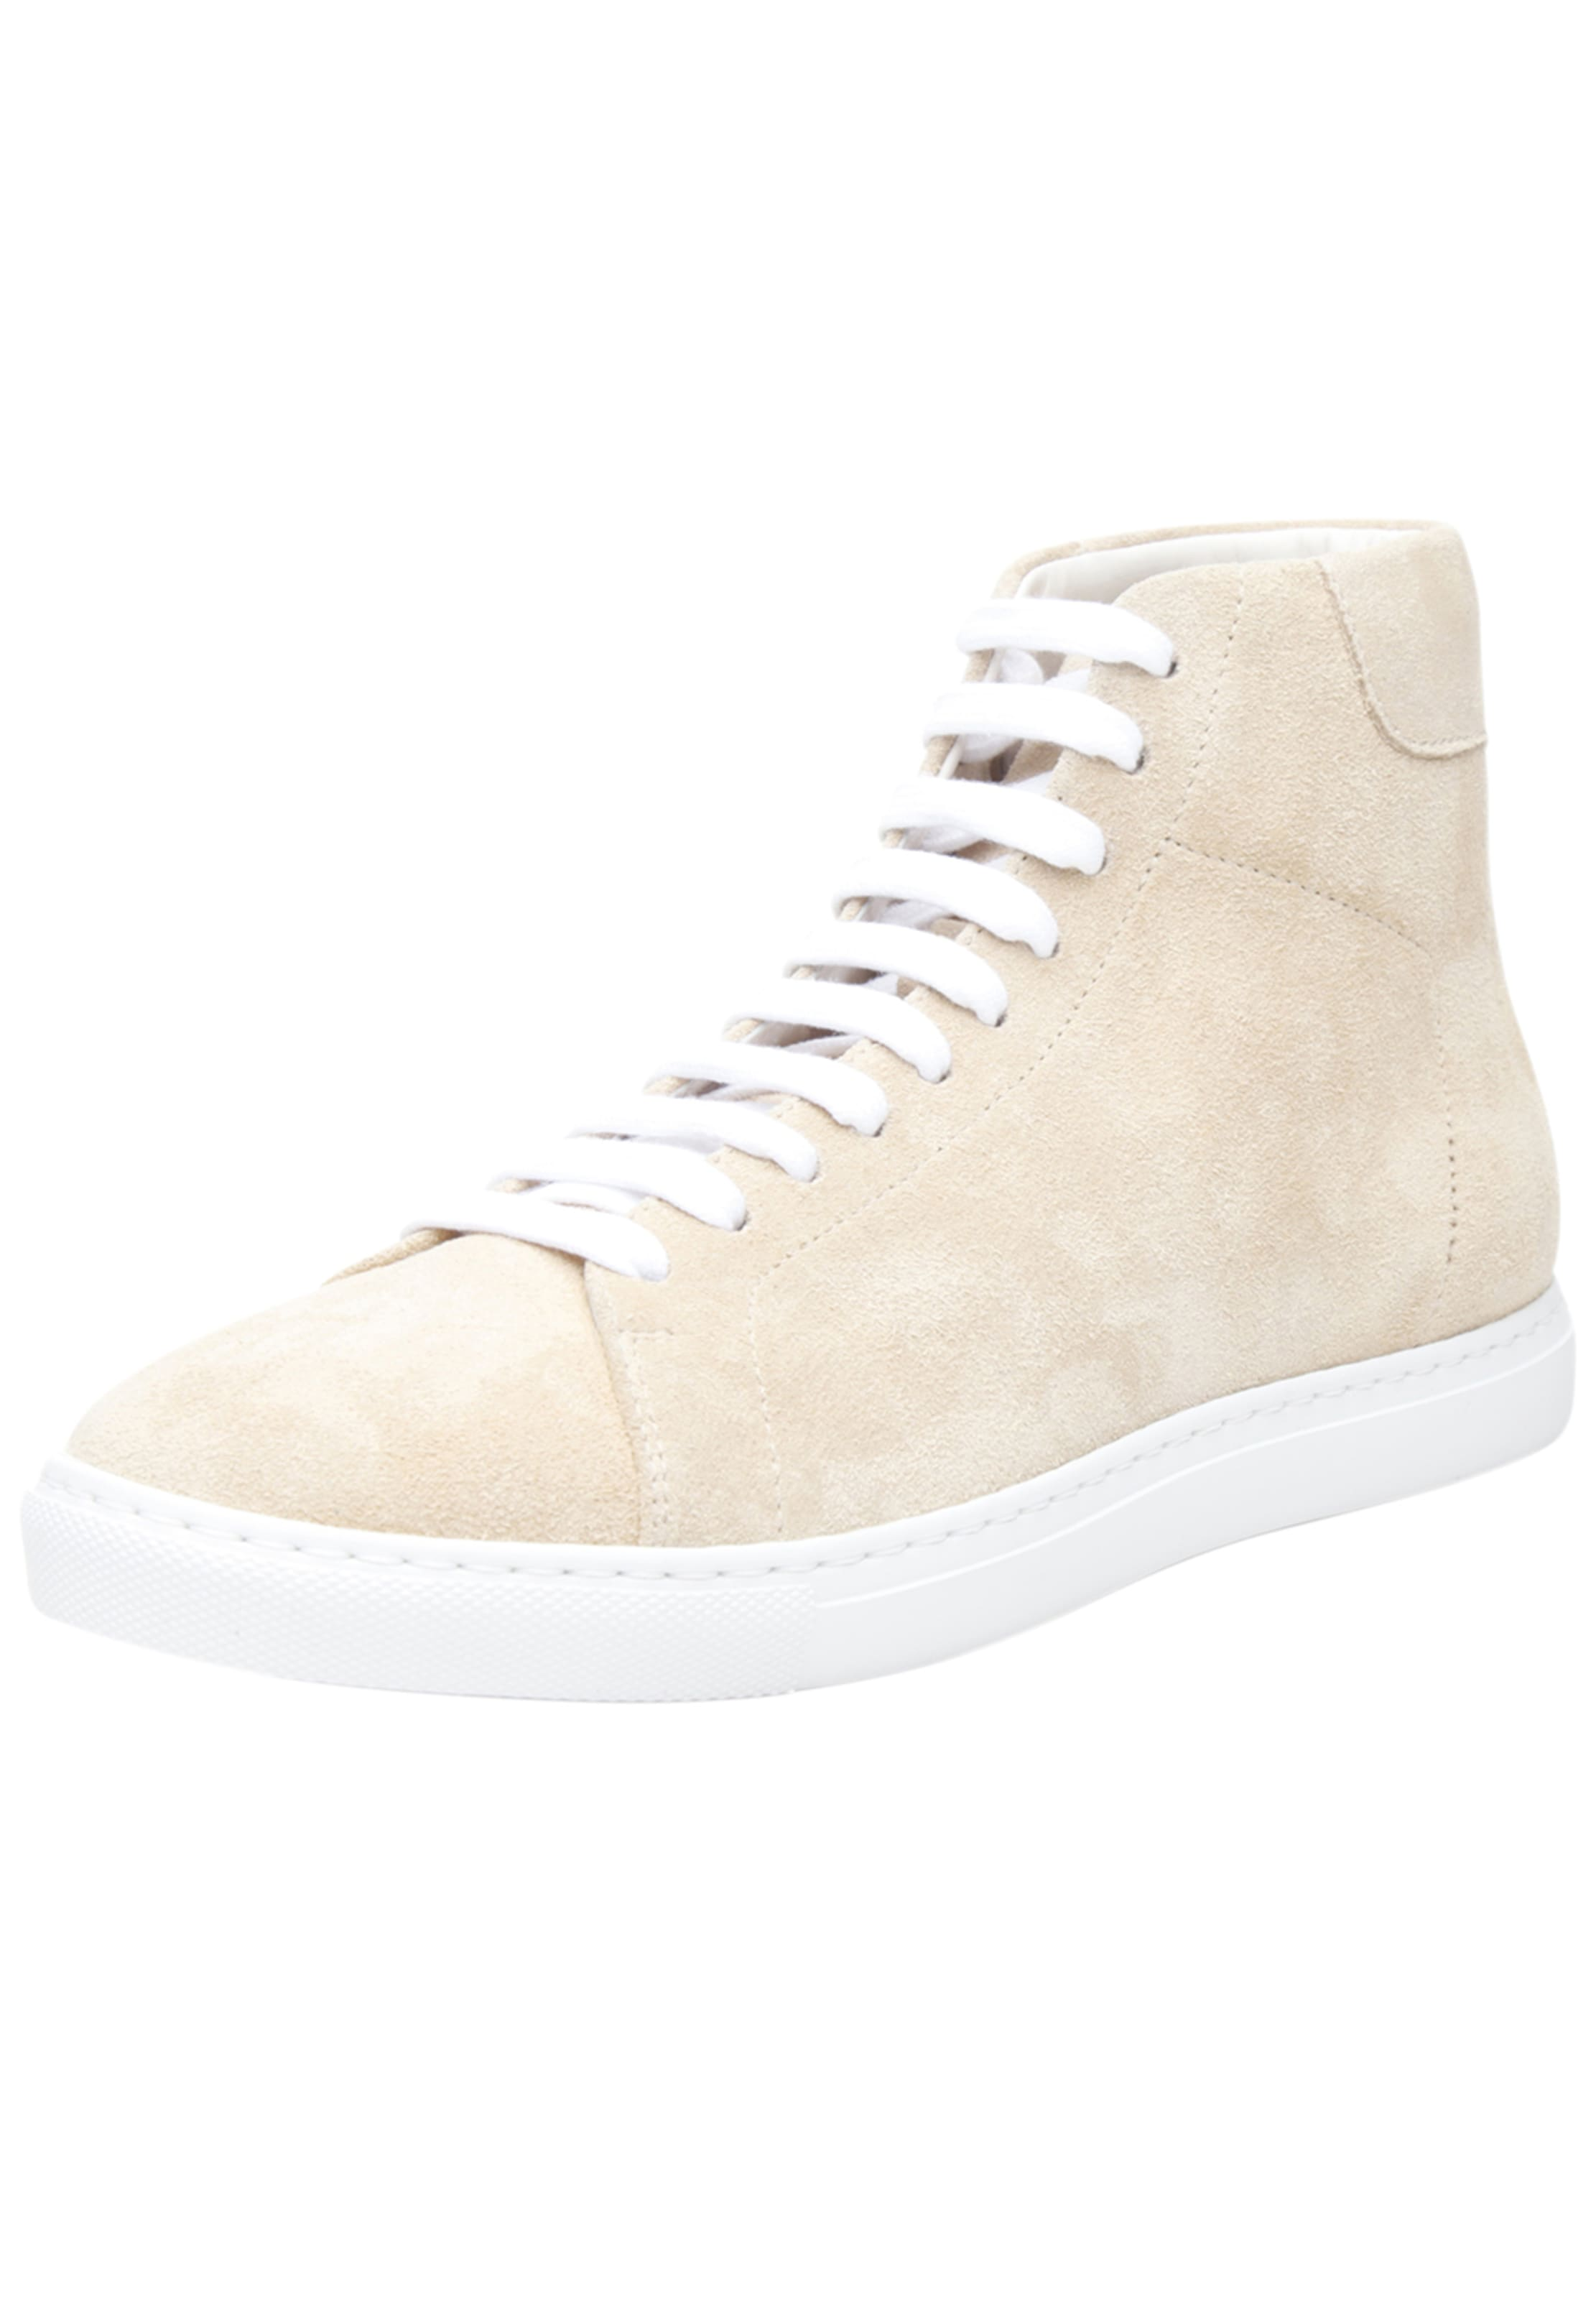 SHOEPASSION Sneaker No. 32 WS Hohe Qualität